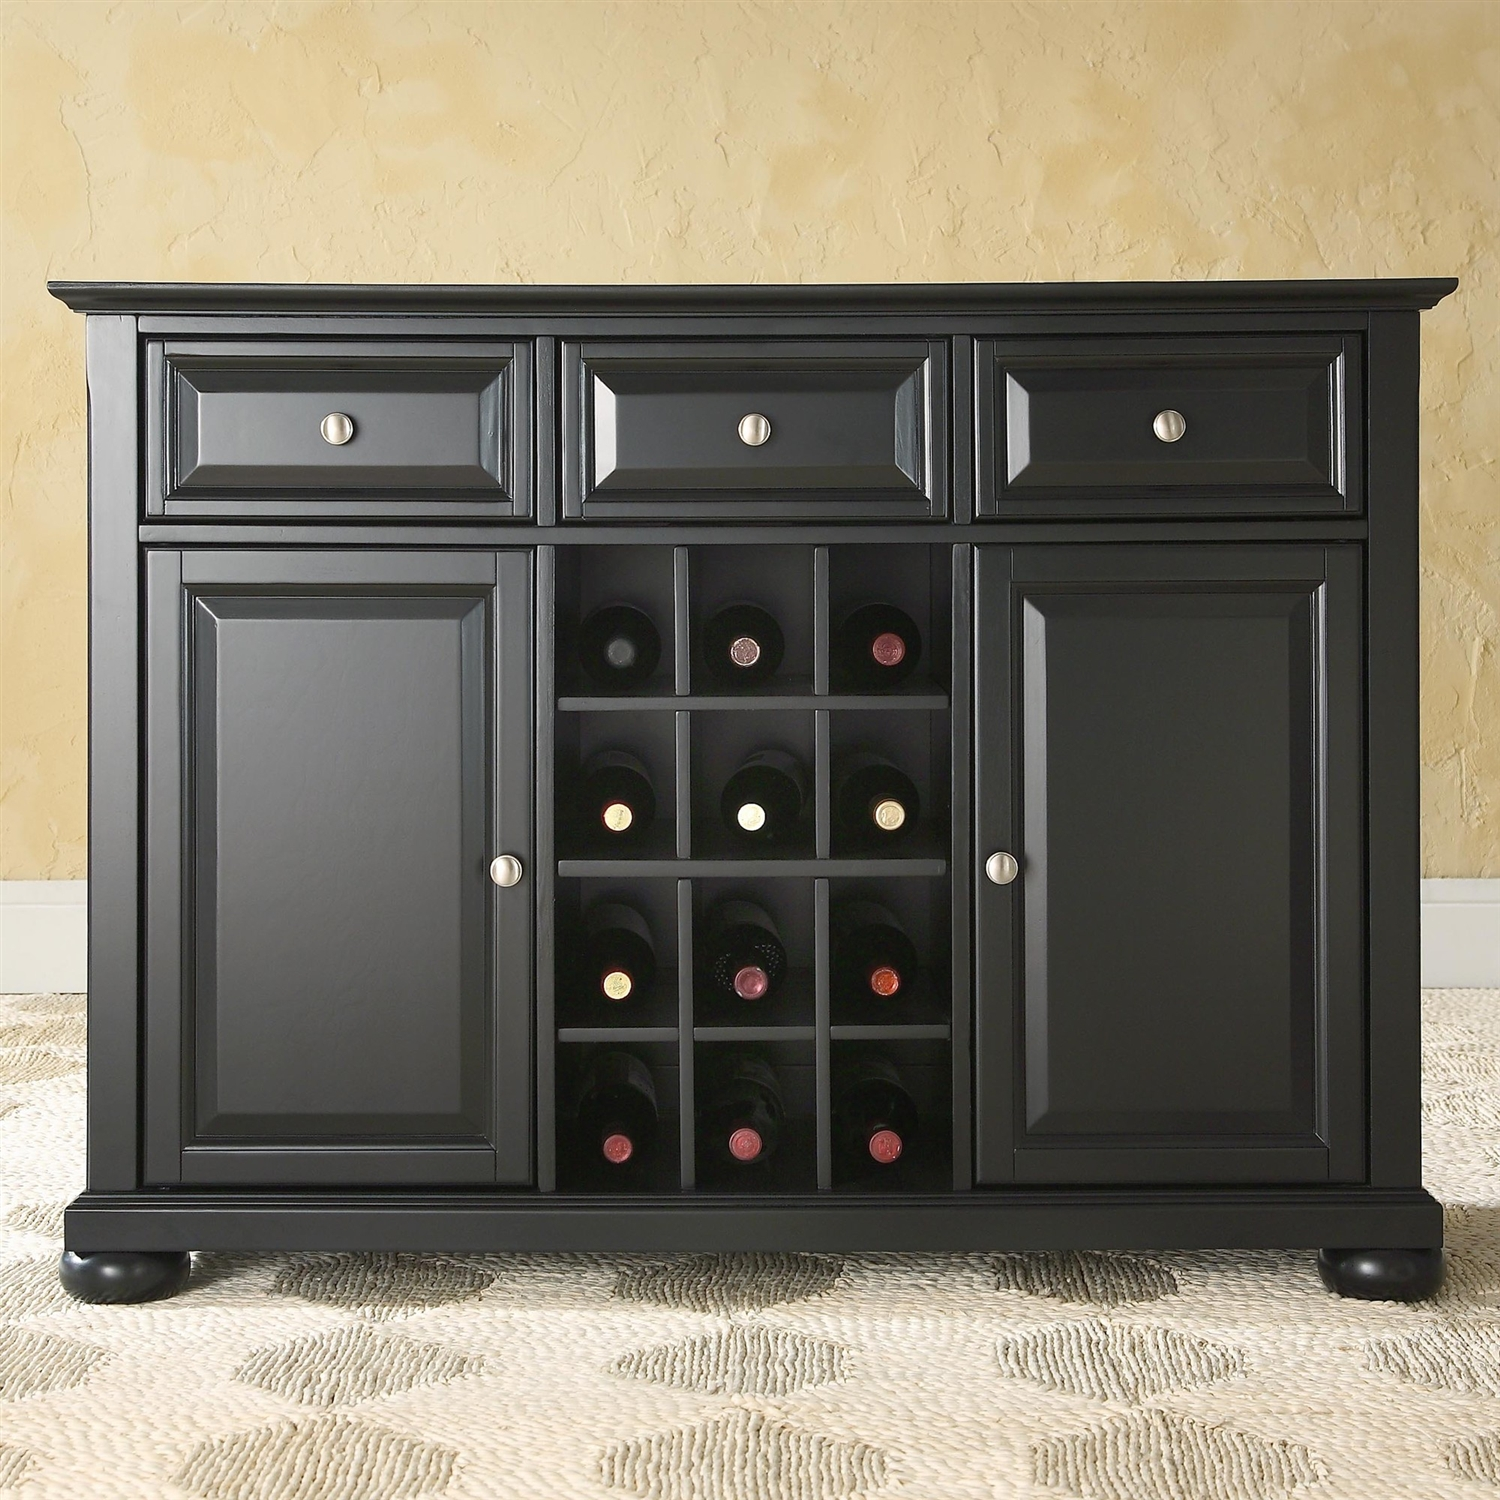 Black Dining Room Buffet Sideboard Cabinet With Wine Storage Fastfurnishings